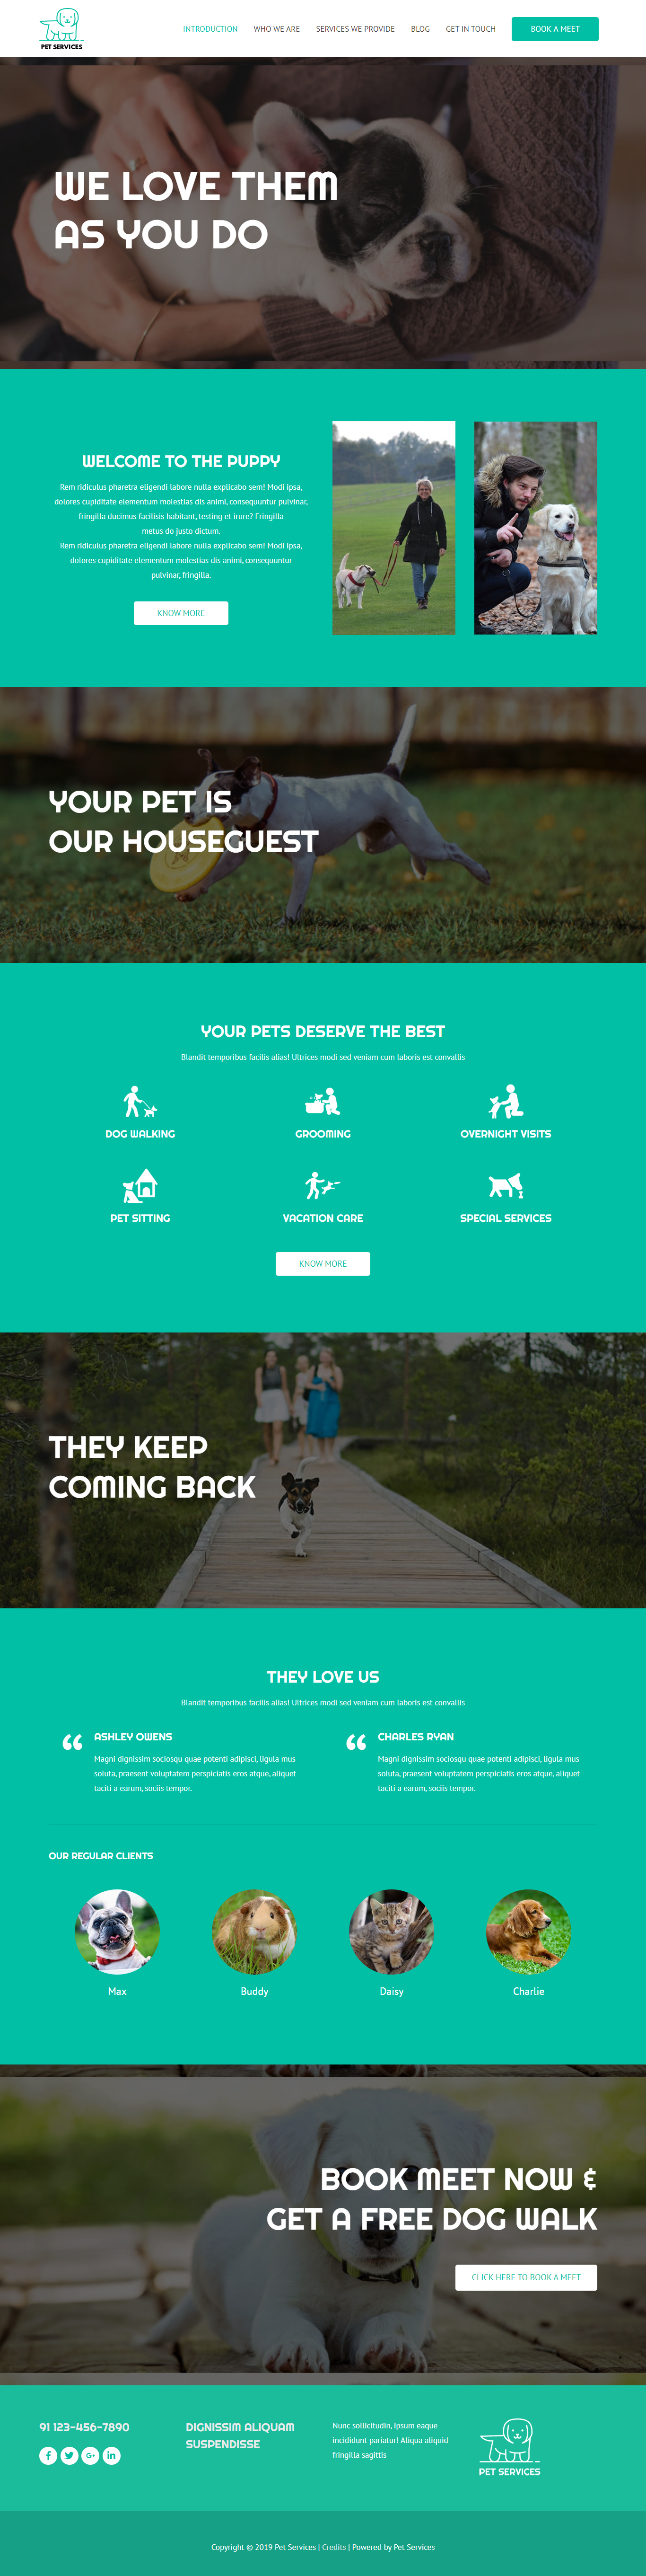 screencapture-websitedemos-net-pet-services-01-2019-11-12-16_57_09